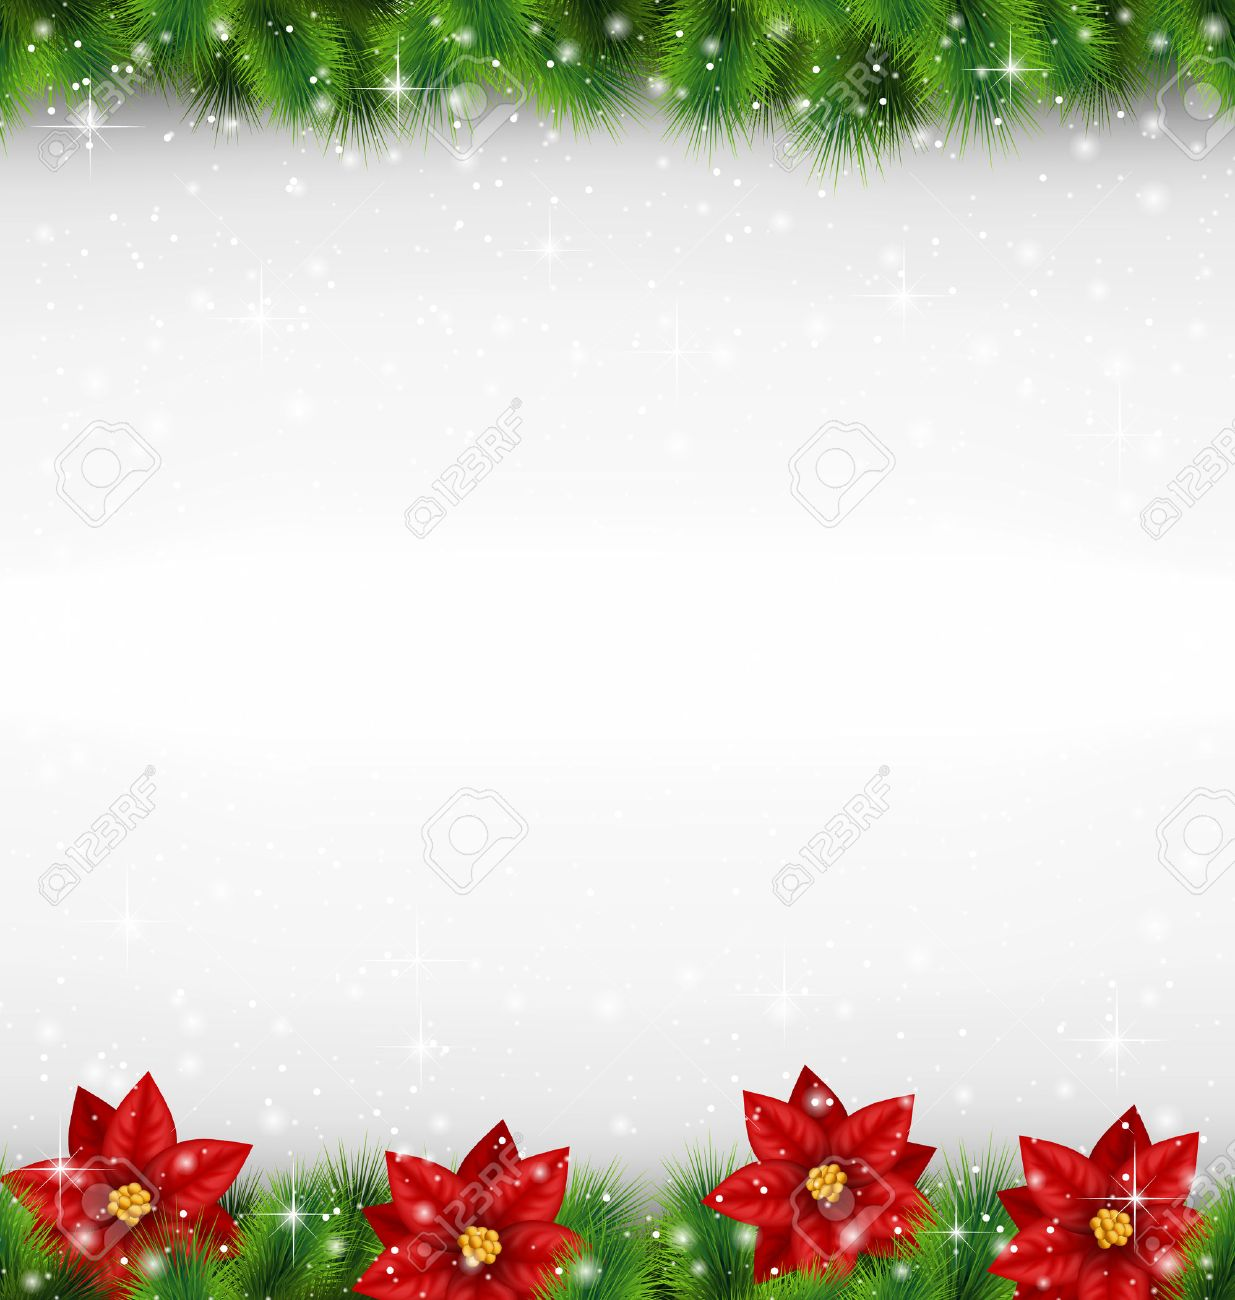 Shiny green pine branches like frame with flower of poinsettia in snowfall on grayscale background - 33955390